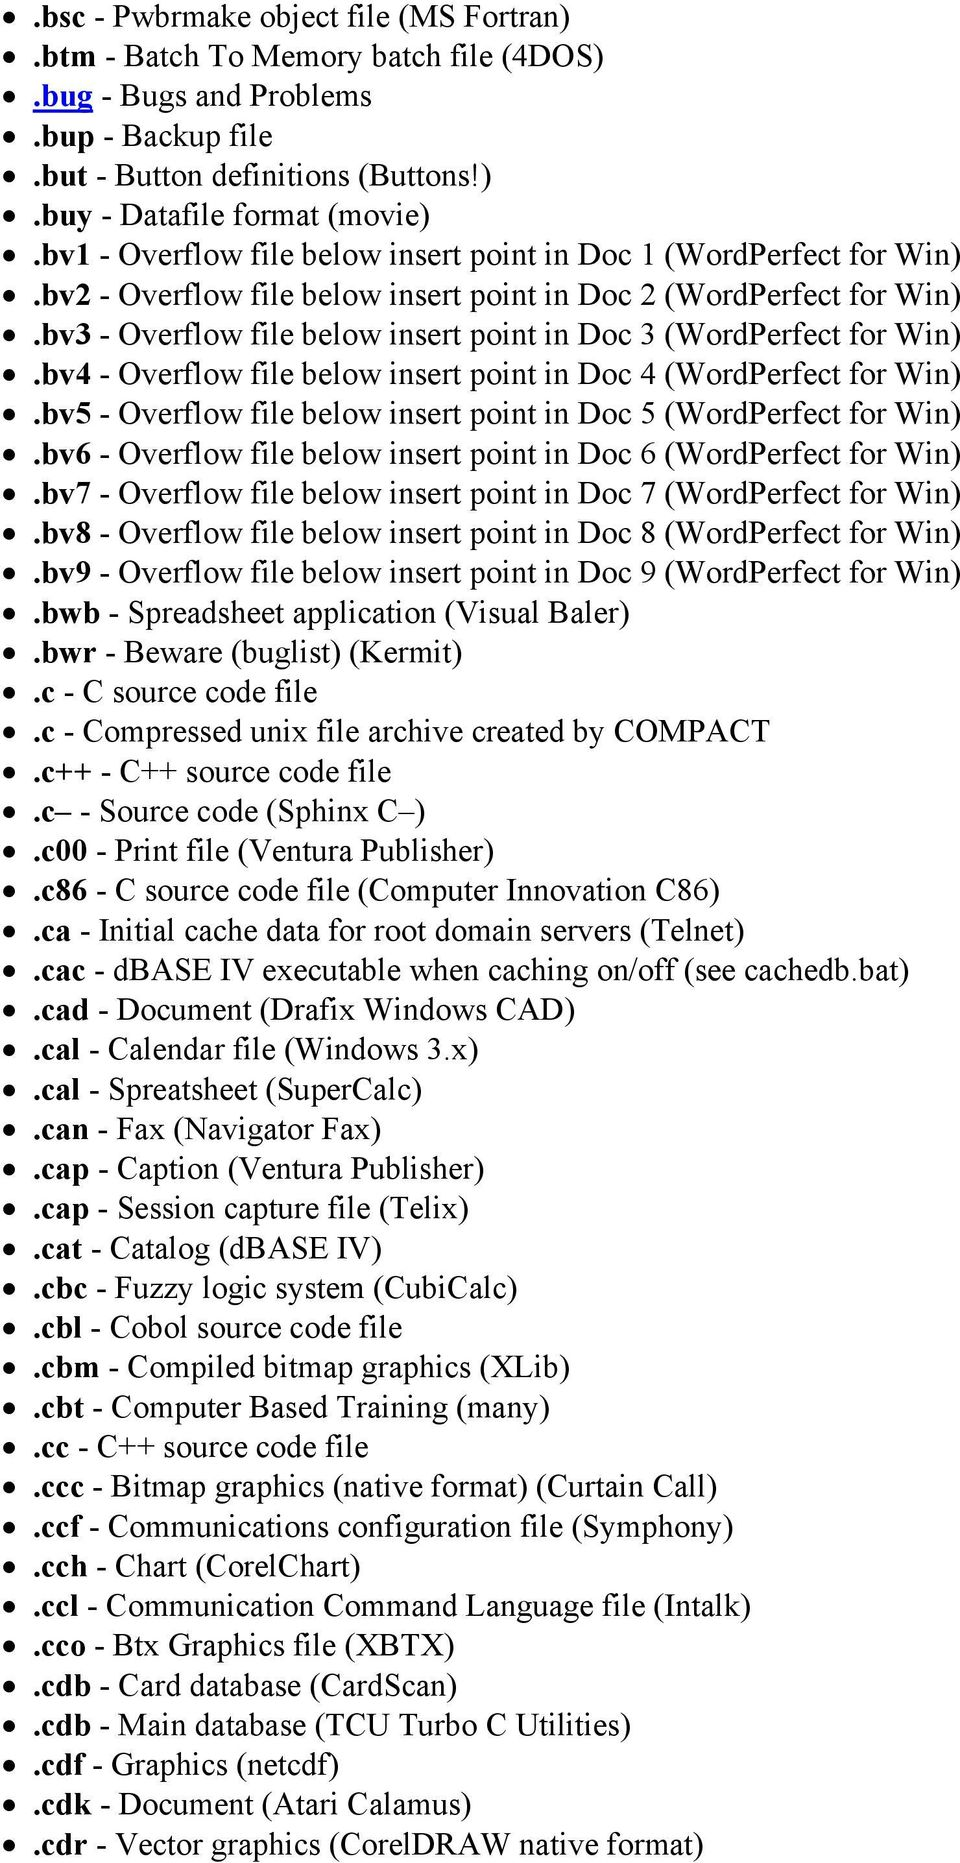 bv3 - Overflow file below insert point in Doc 3 (WordPerfect for Win).bv4 - Overflow file below insert point in Doc 4 (WordPerfect for Win).